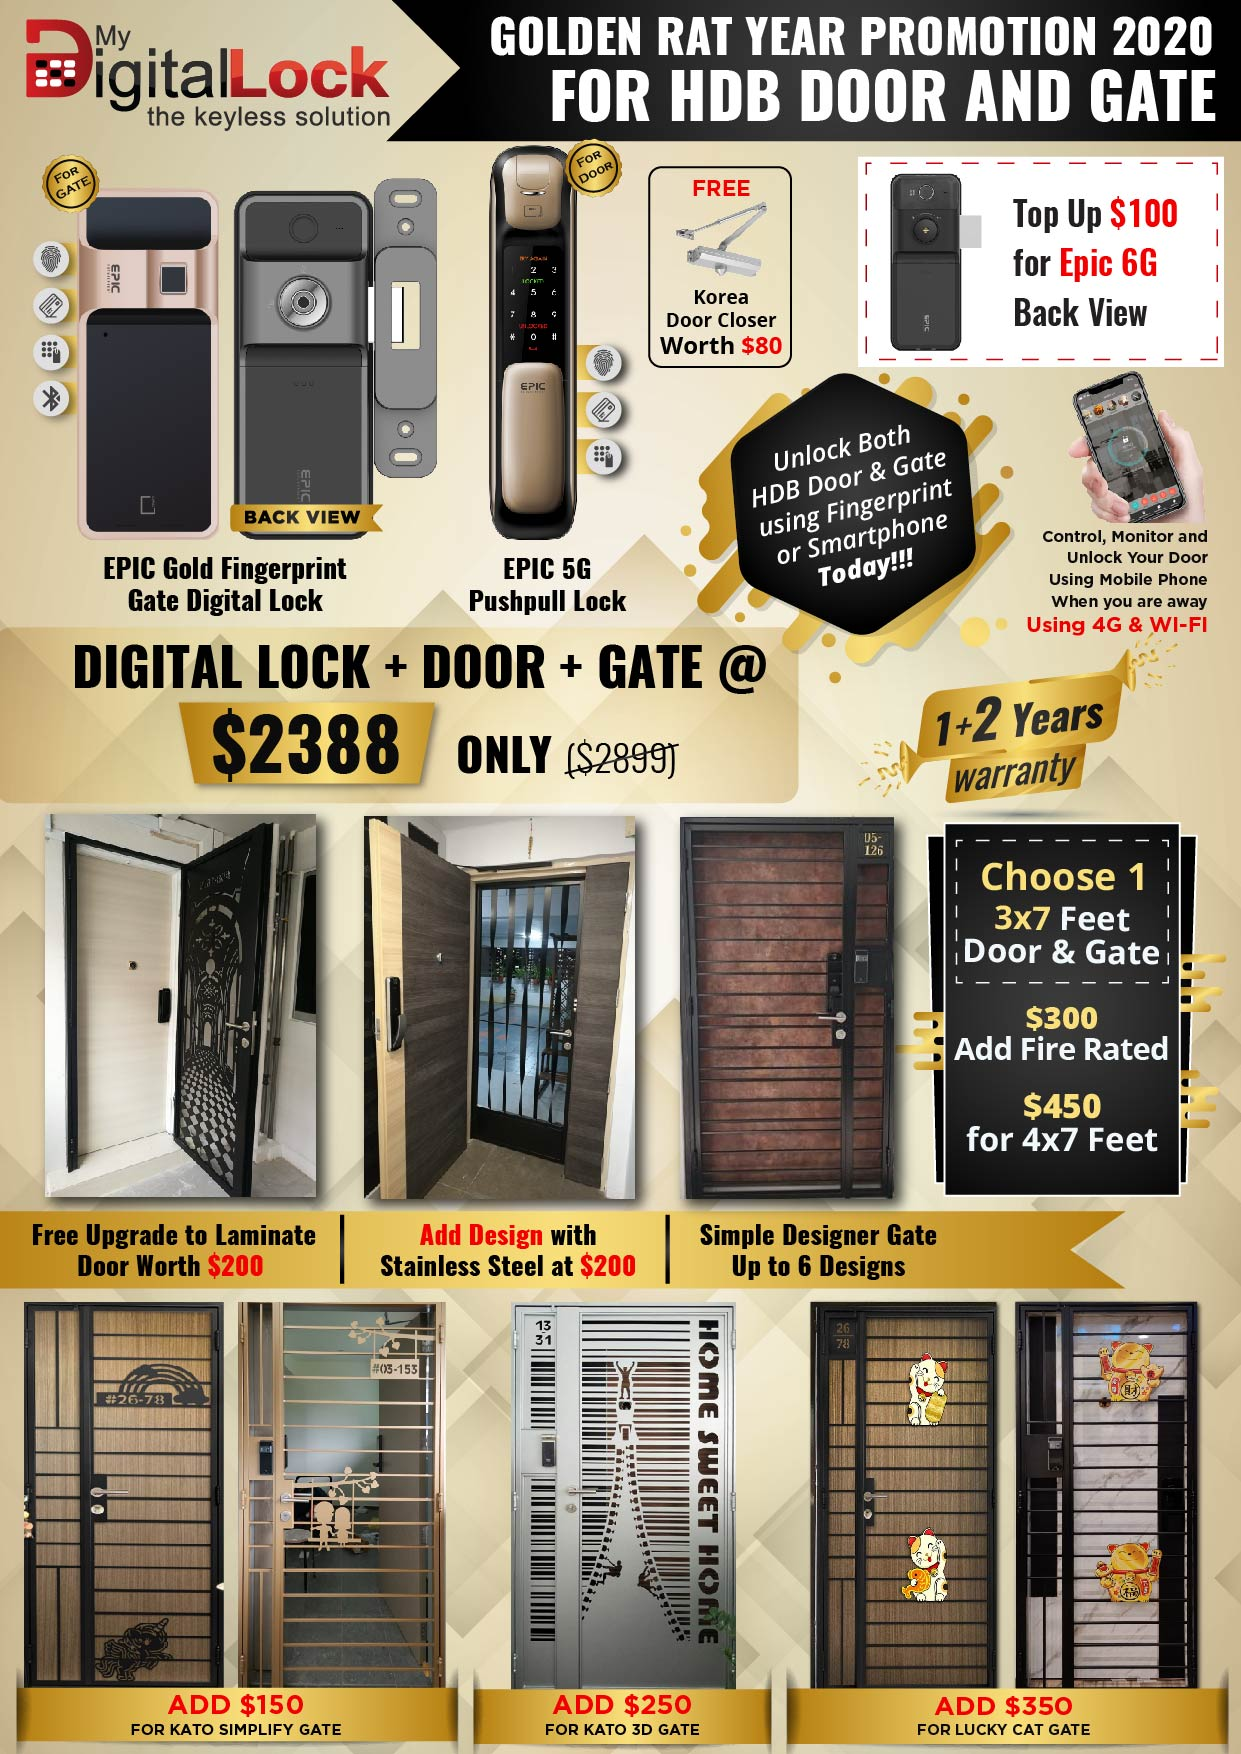 Golden Rat Year HDB Door and Gate Promotion with EPIC Gold Fingerprint and 5G PushPull Digital Lock